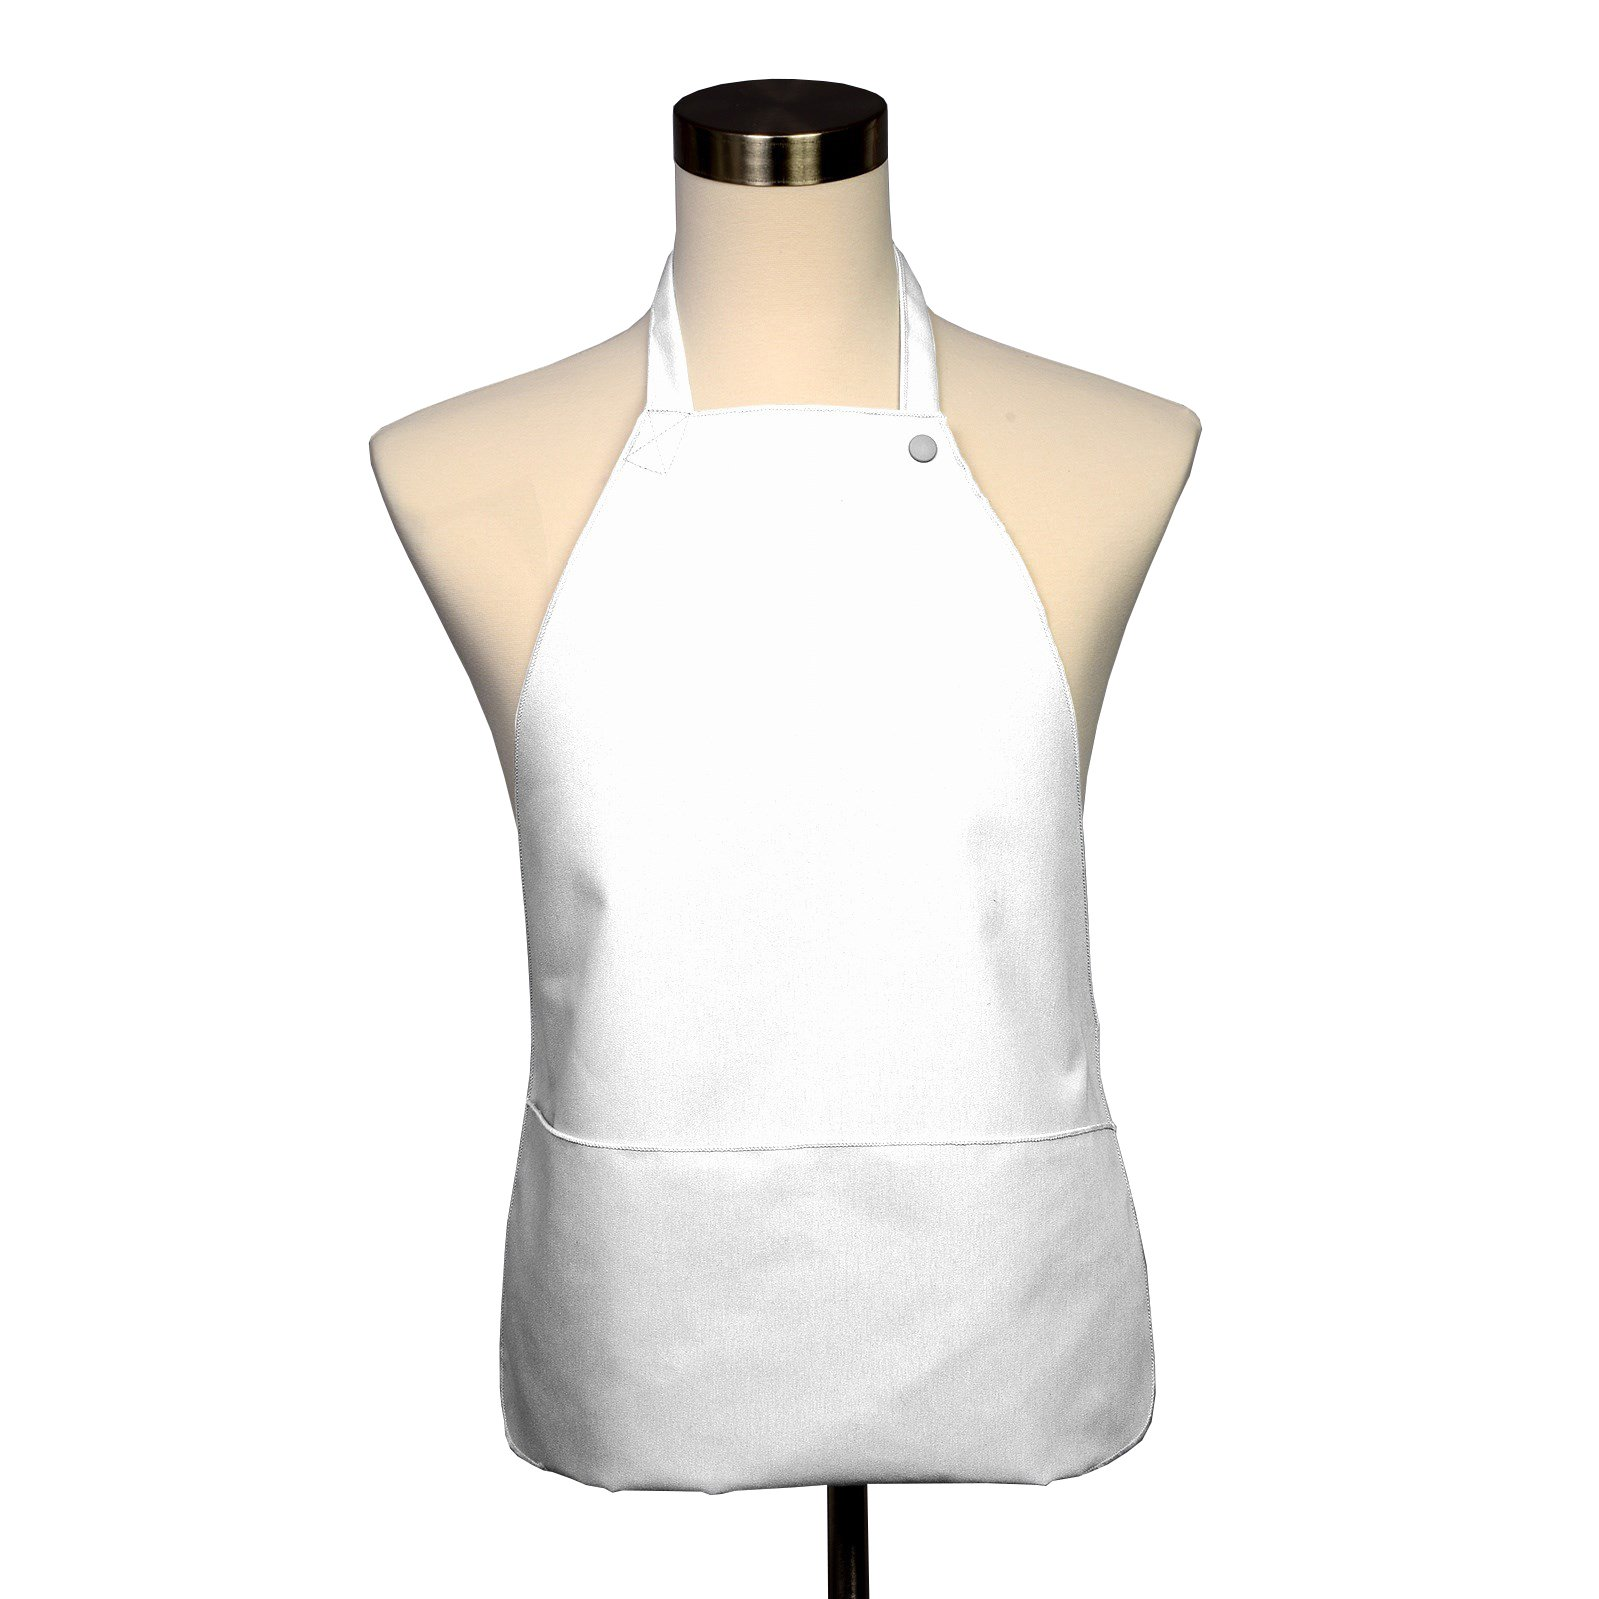 Adult Bib 25 Pack - Covered with Care Assorted Colors Available! (White) by Fabric Textile Products